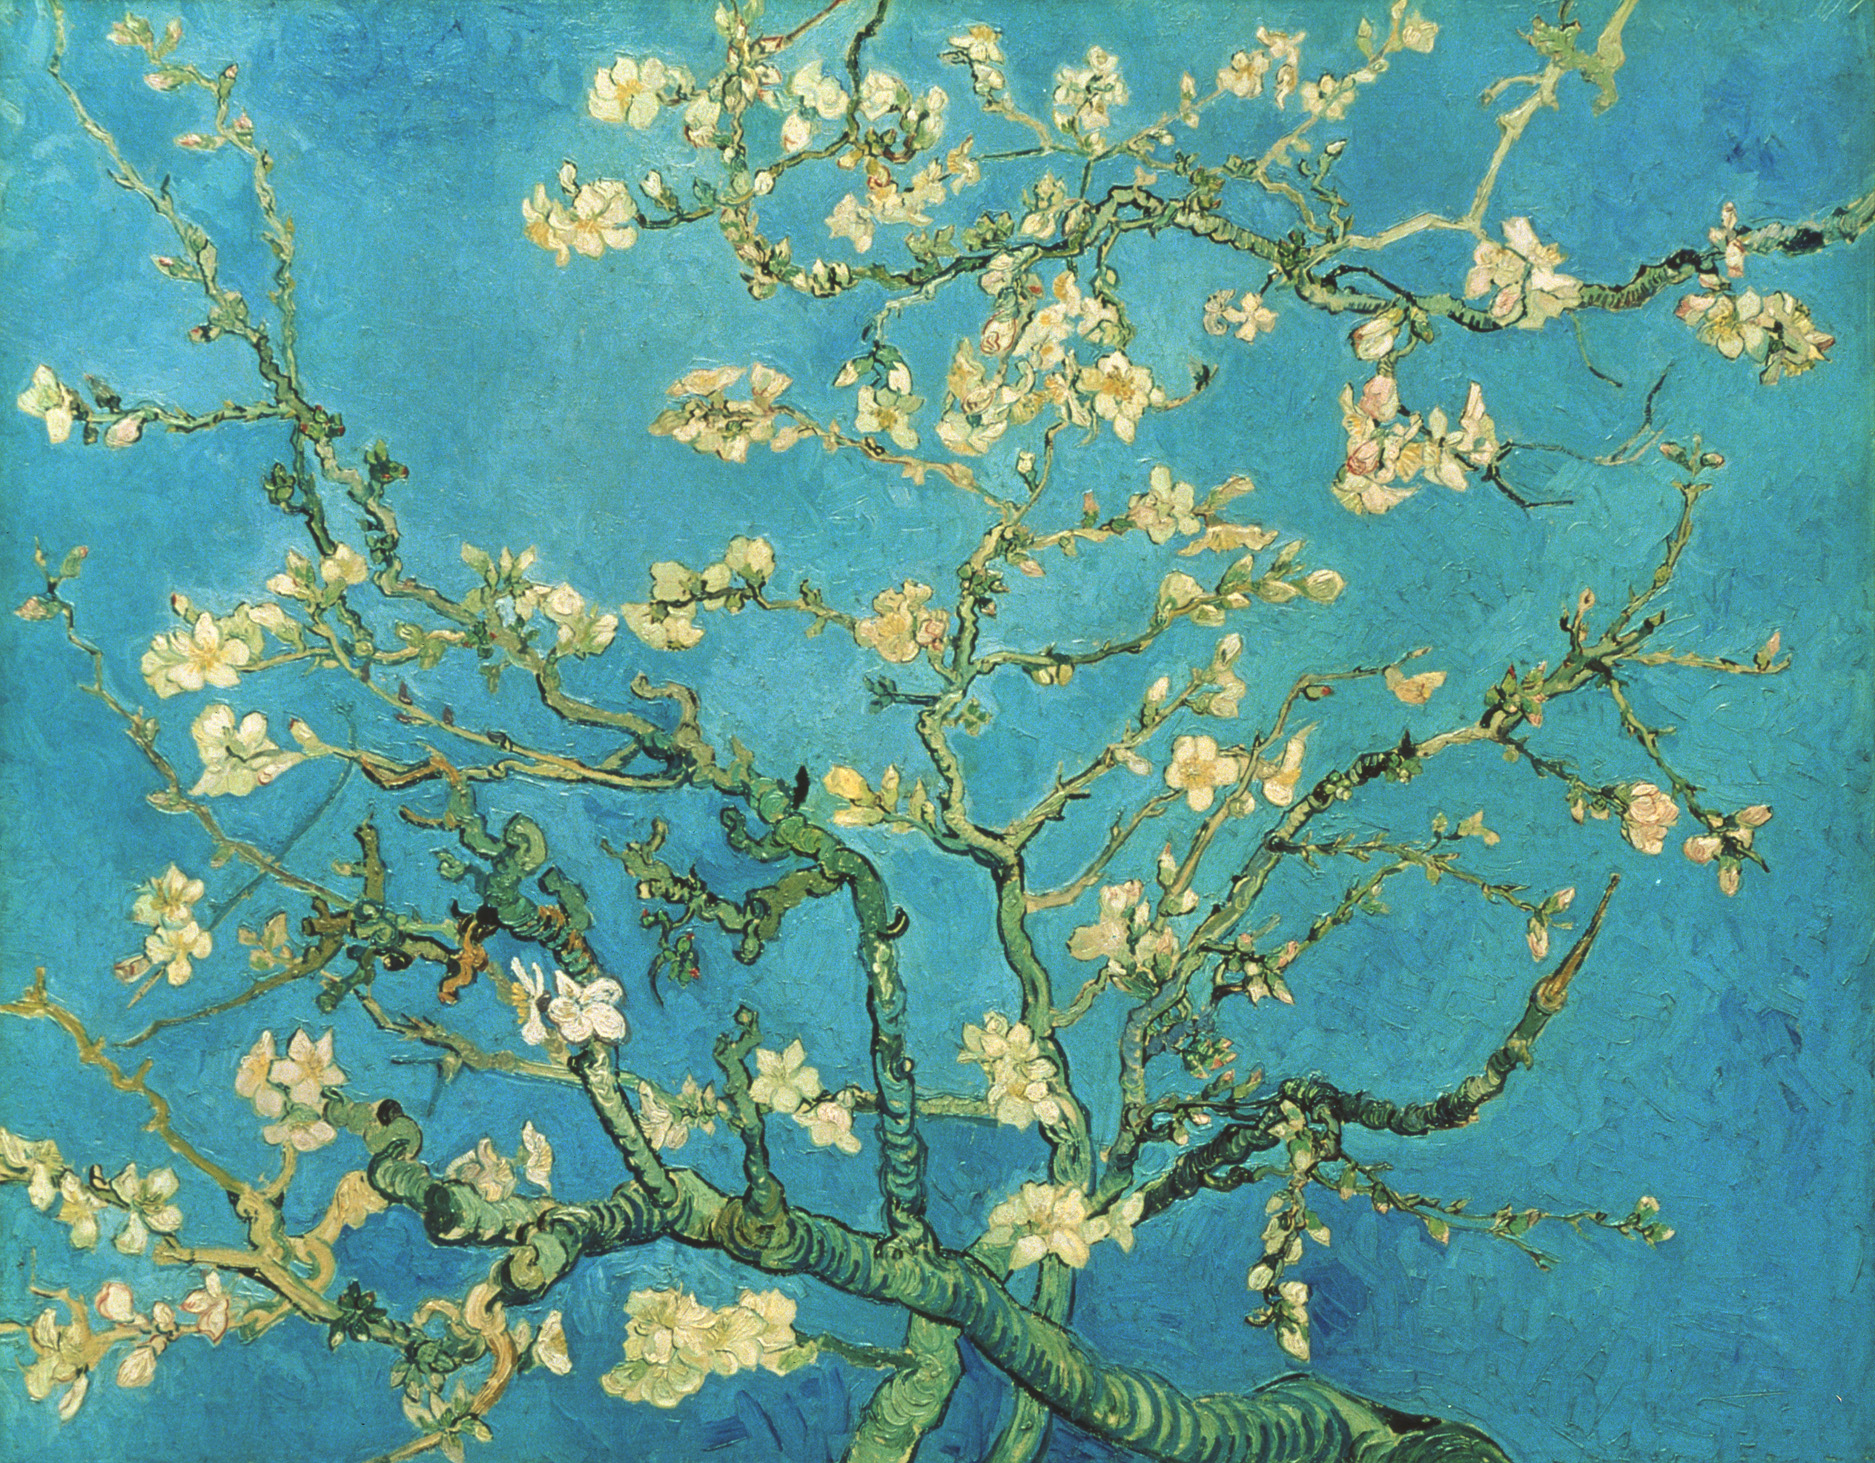 S0147742 Branch of an Almond Tree in Blossom. 1890. Image licenced to Karolina Skupien National Gallery of Canada by Karolina Skupien Usage : - 2000 X 2000 pixels © Art Resource, NY / Art Resource